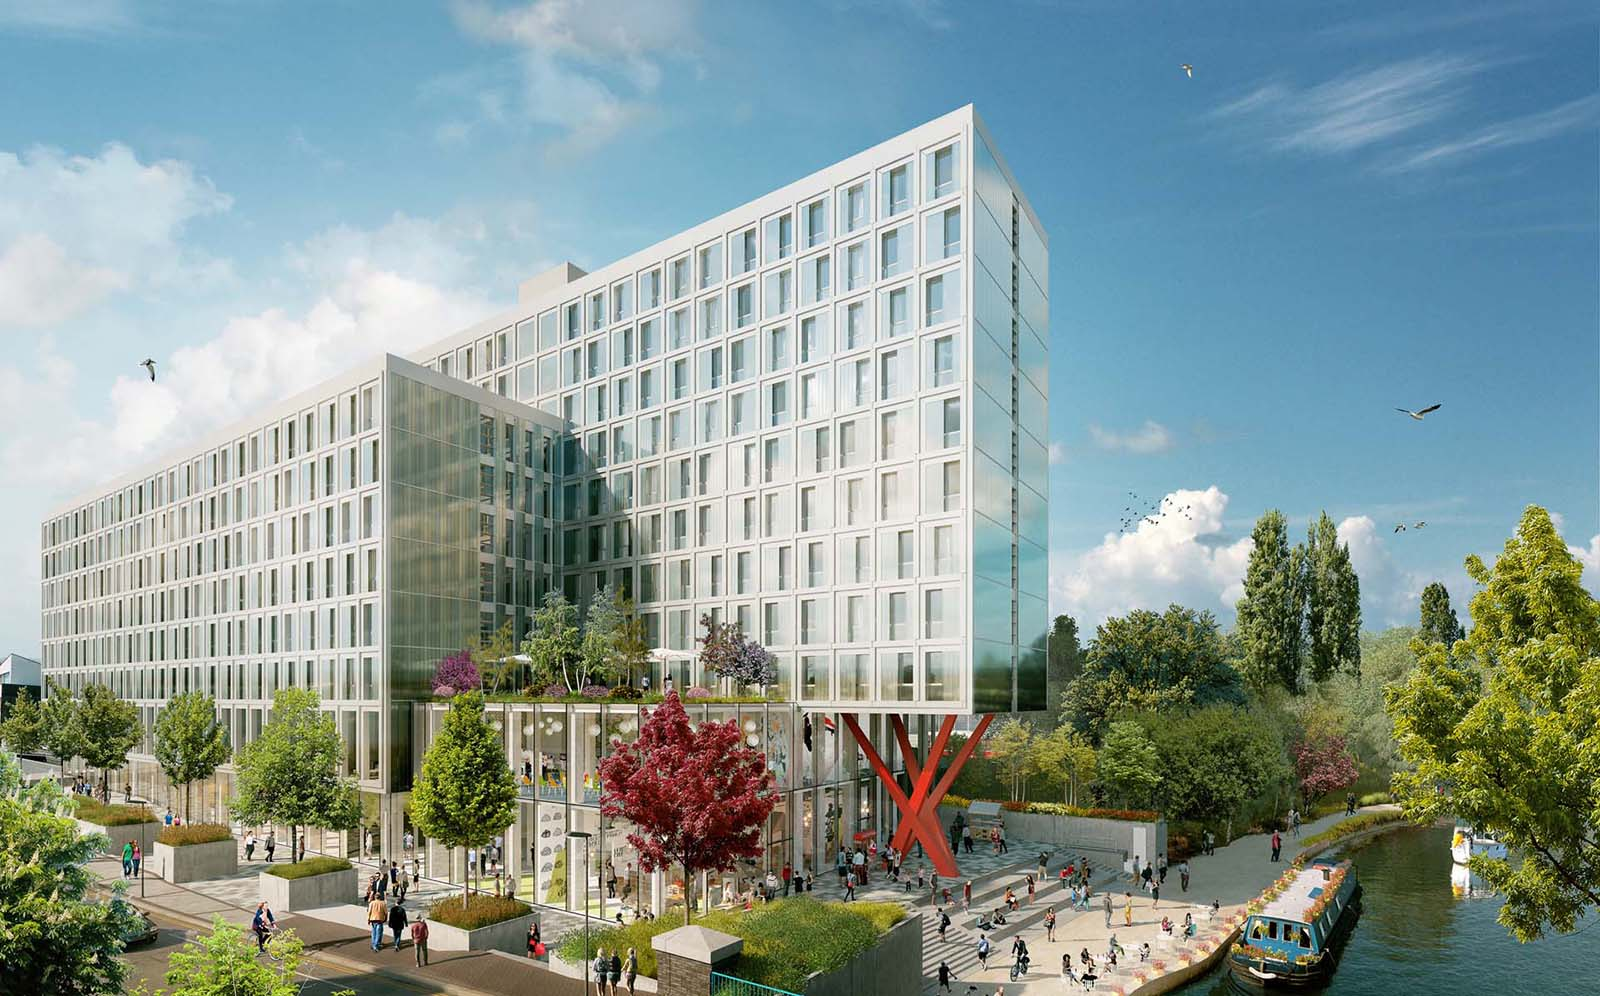 London's Old Oak to welcome world's largest co-living